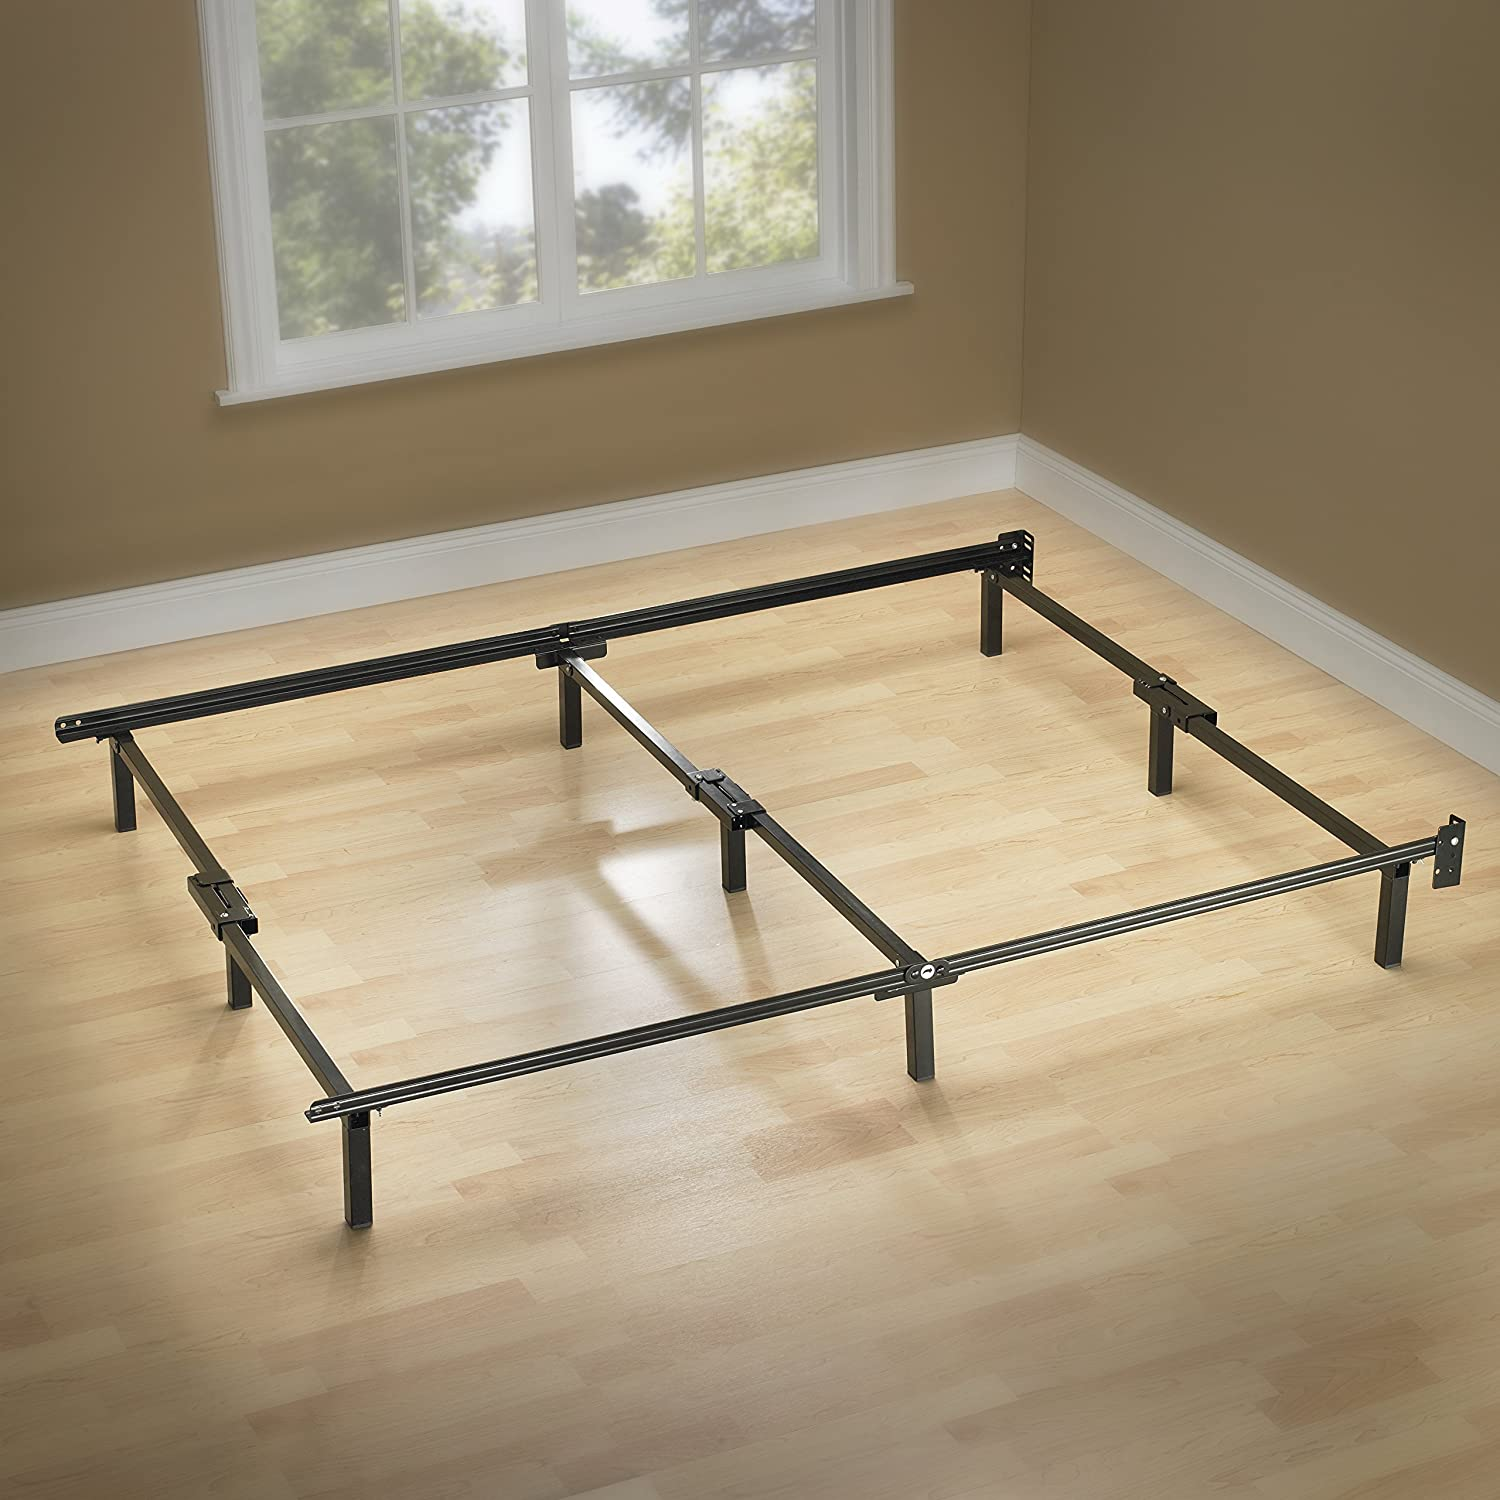 Zinus Compack 9-Leg Support Bed Frame, for Box Spring & Mattress Set, Queen